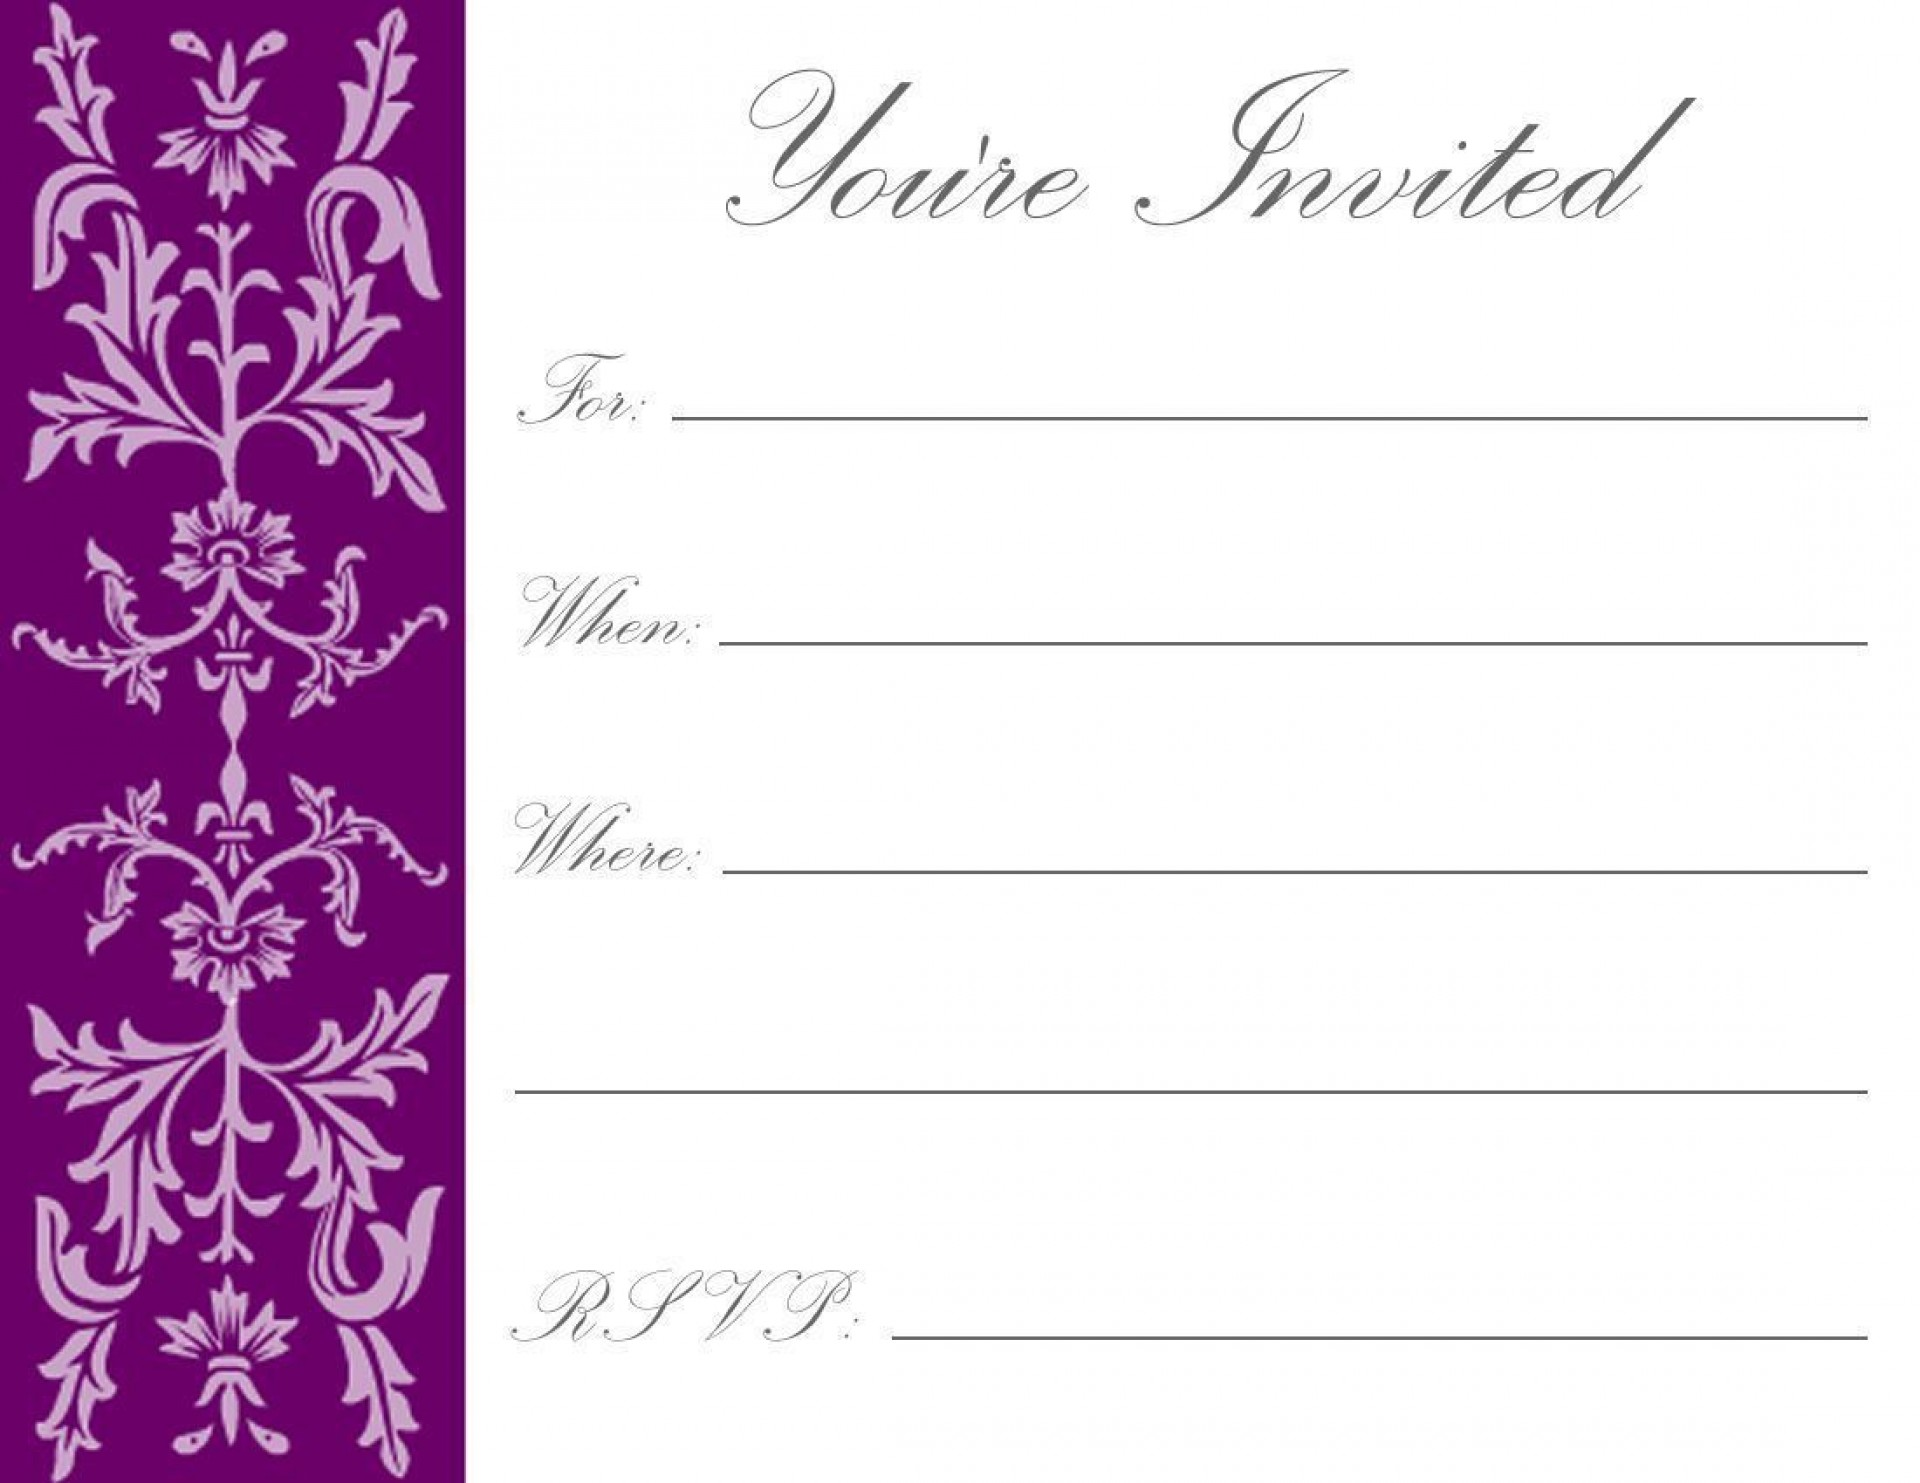 003 Incredible Free Online Invitation Template Printable Design  Baby Shower Wedding1920